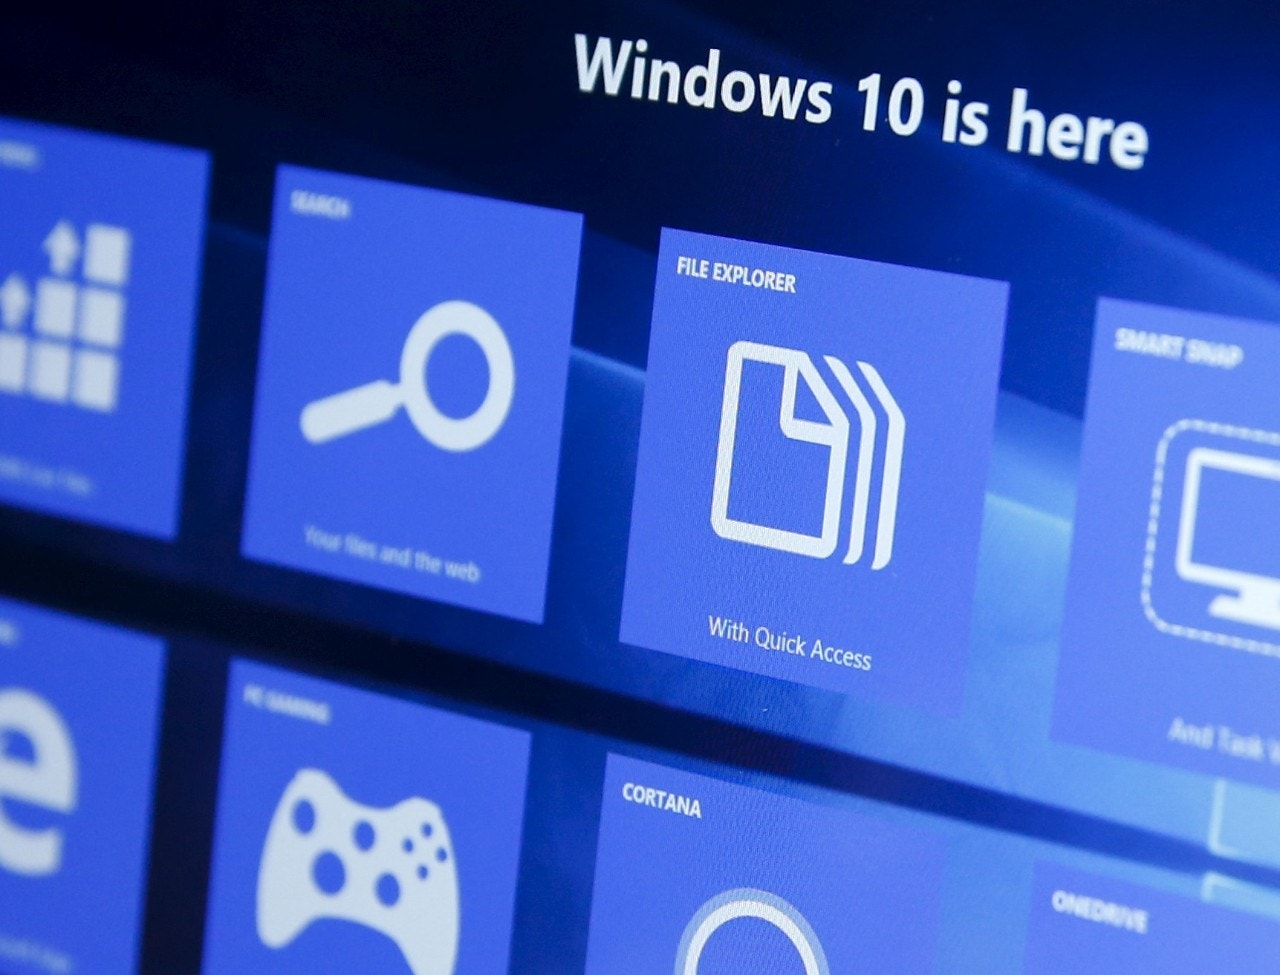 5 urgent questions about Windows 10 answered